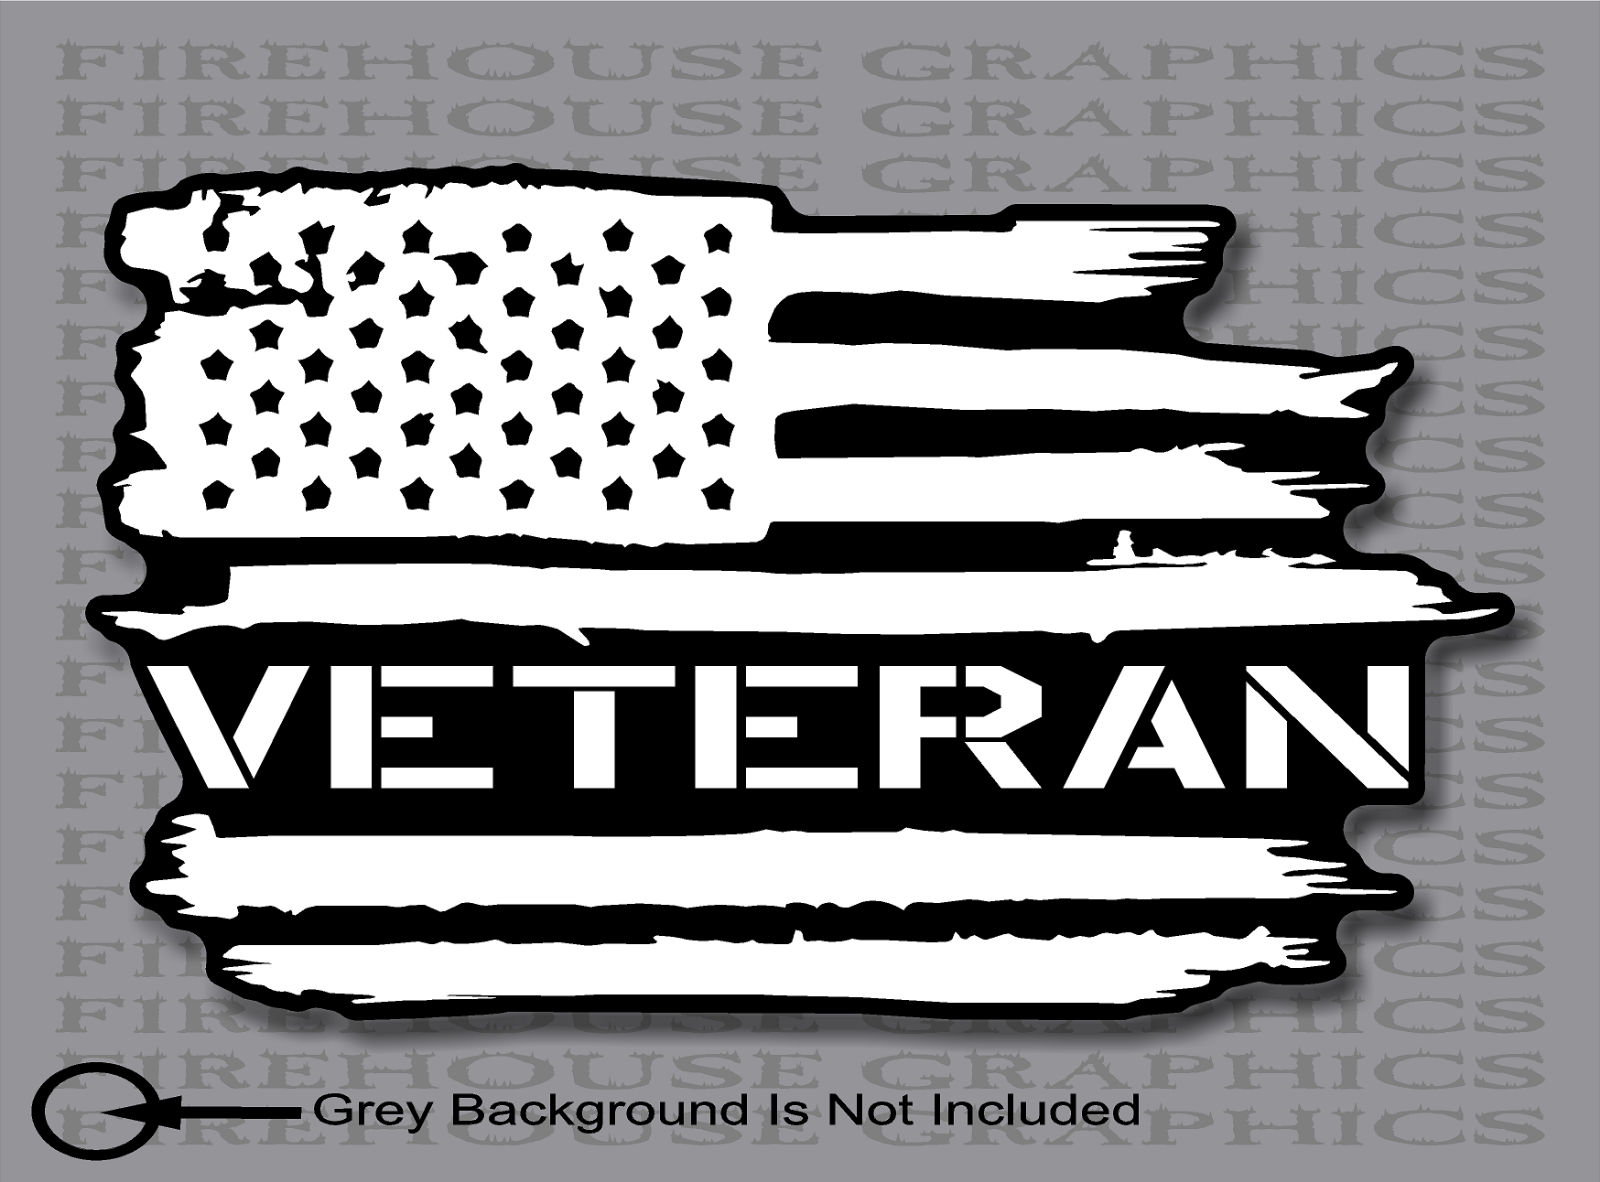 Army vet clipart graphic library library Details about US Veteran American flag Army Navy Marines Air Force vinyl  sticker decal graphic library library